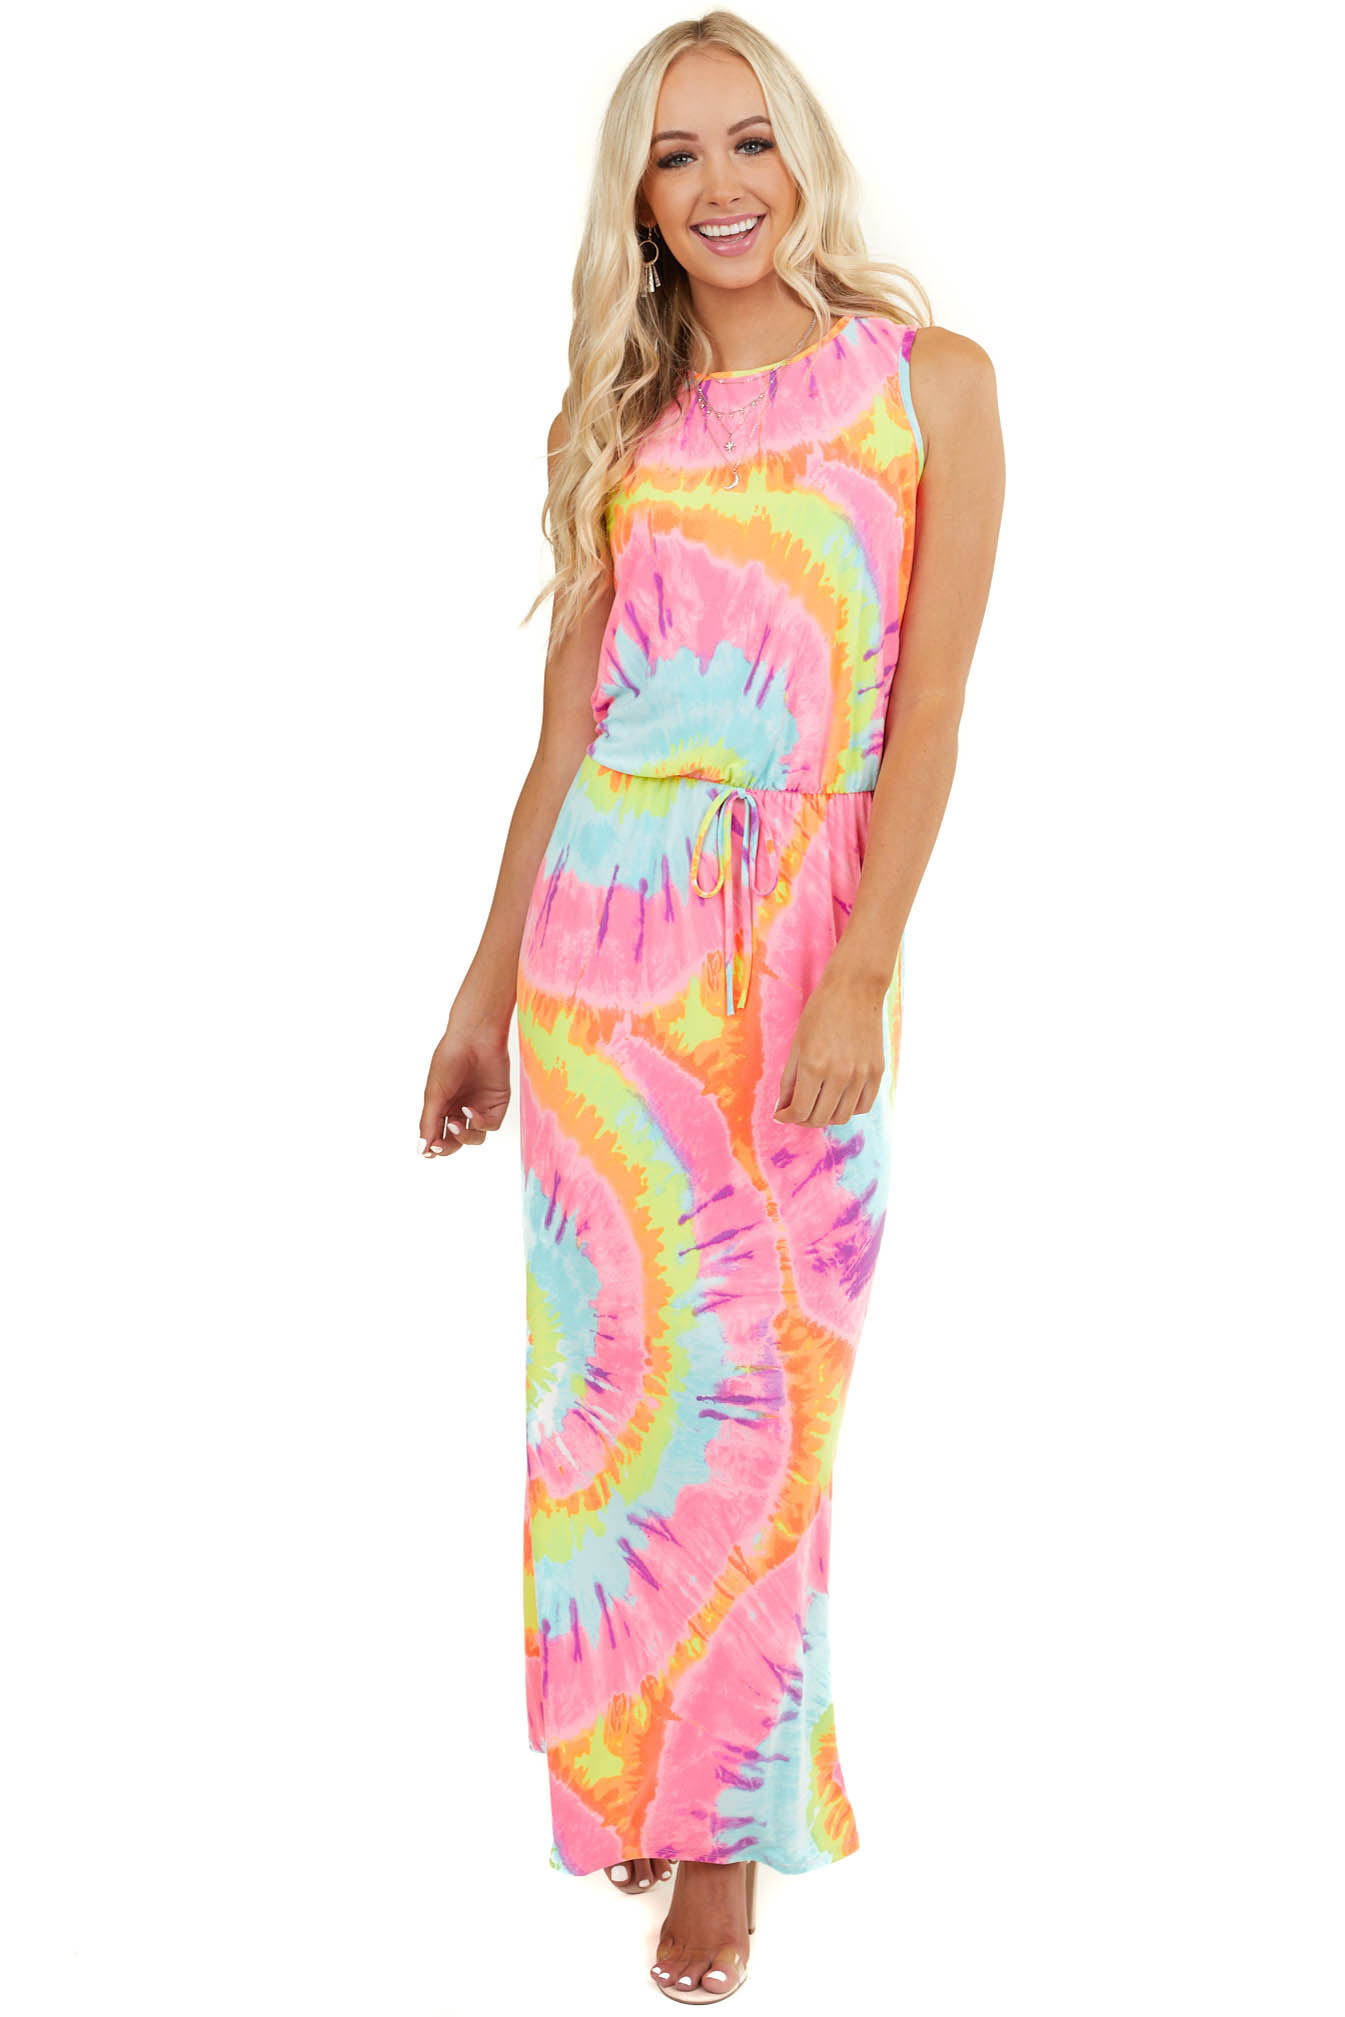 Neon Multicolor Tie Dye Sleeveless Maxi Dress with Pockets